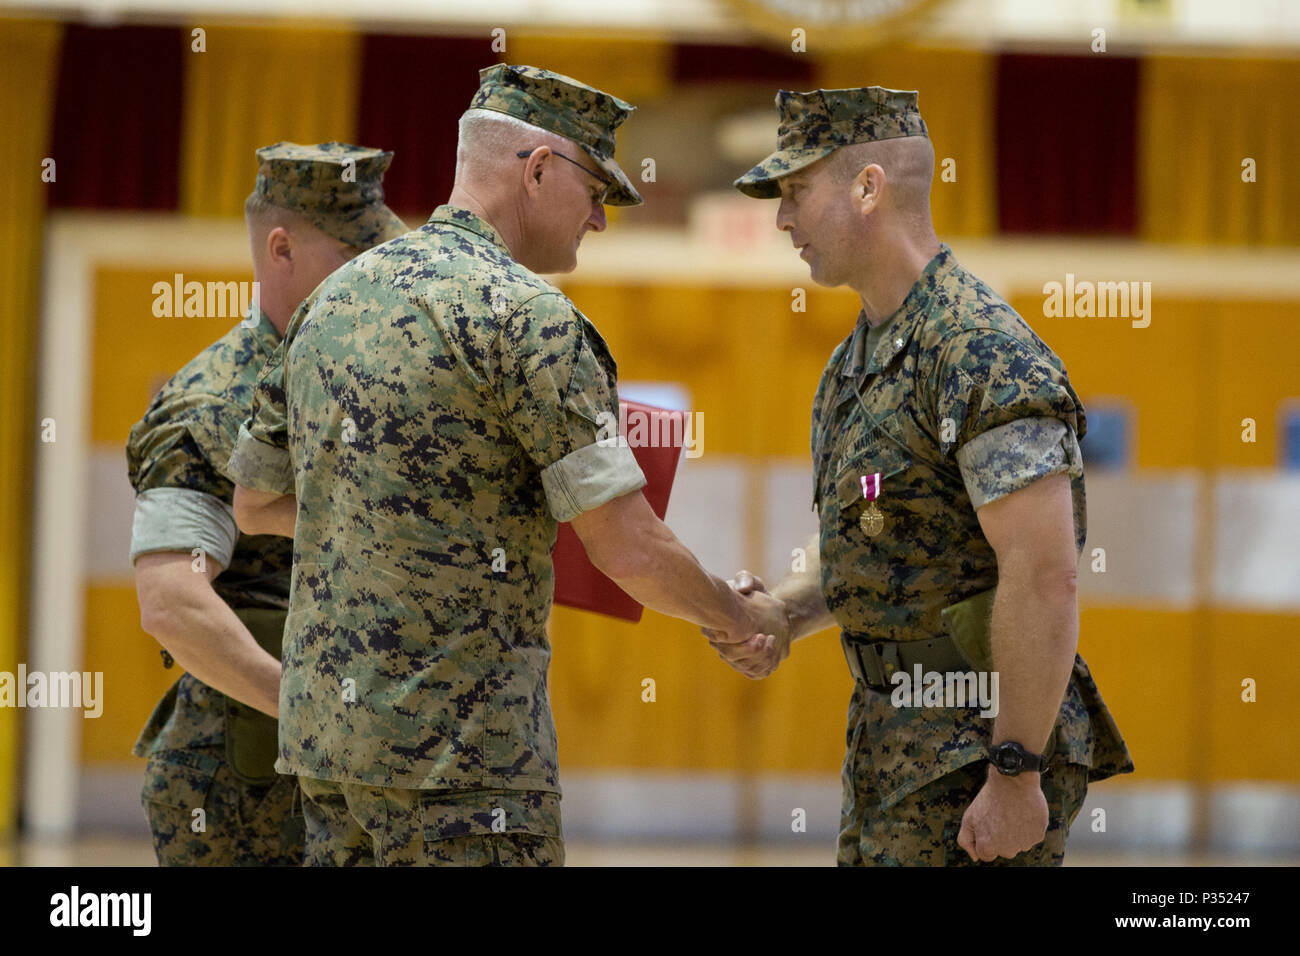 U.S. Marine Corps Col. Christian Cabaniss, center, the assistant commander of 2nd Marine Division, II Marine Expeditionary Force, shakes hands with Lt. Col. Lance J. Langfeldt, right, outgoing commanding officer of 2nd Tank Battalion, 2nd Marine Division, during a change of command ceremony at Camp Lejeune, N.C., June 15, 2018. During the ceremony, Langfeldt relinquished command of the unit to Lt. Col. Charles D. Nicol. (U.S. Marine Corps photo by Cpl. Melanye Martinez) - Stock Image